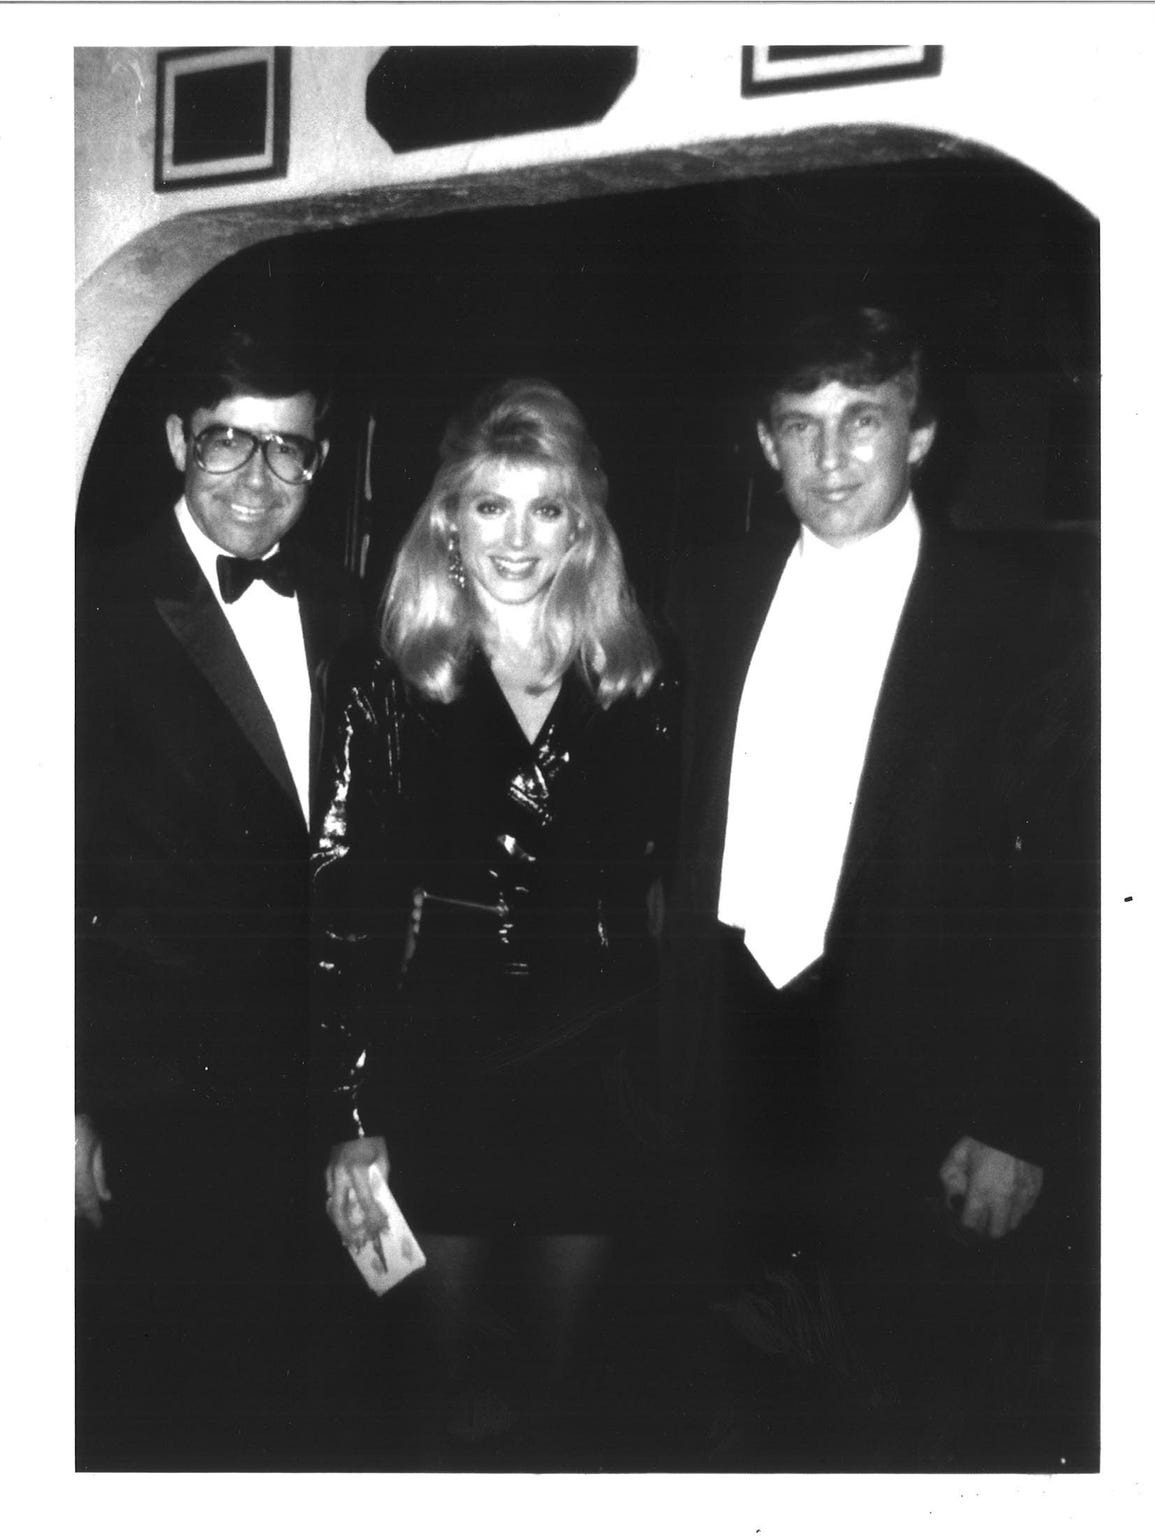 Donald Trump and his then-girlfriend Marla Maples visited